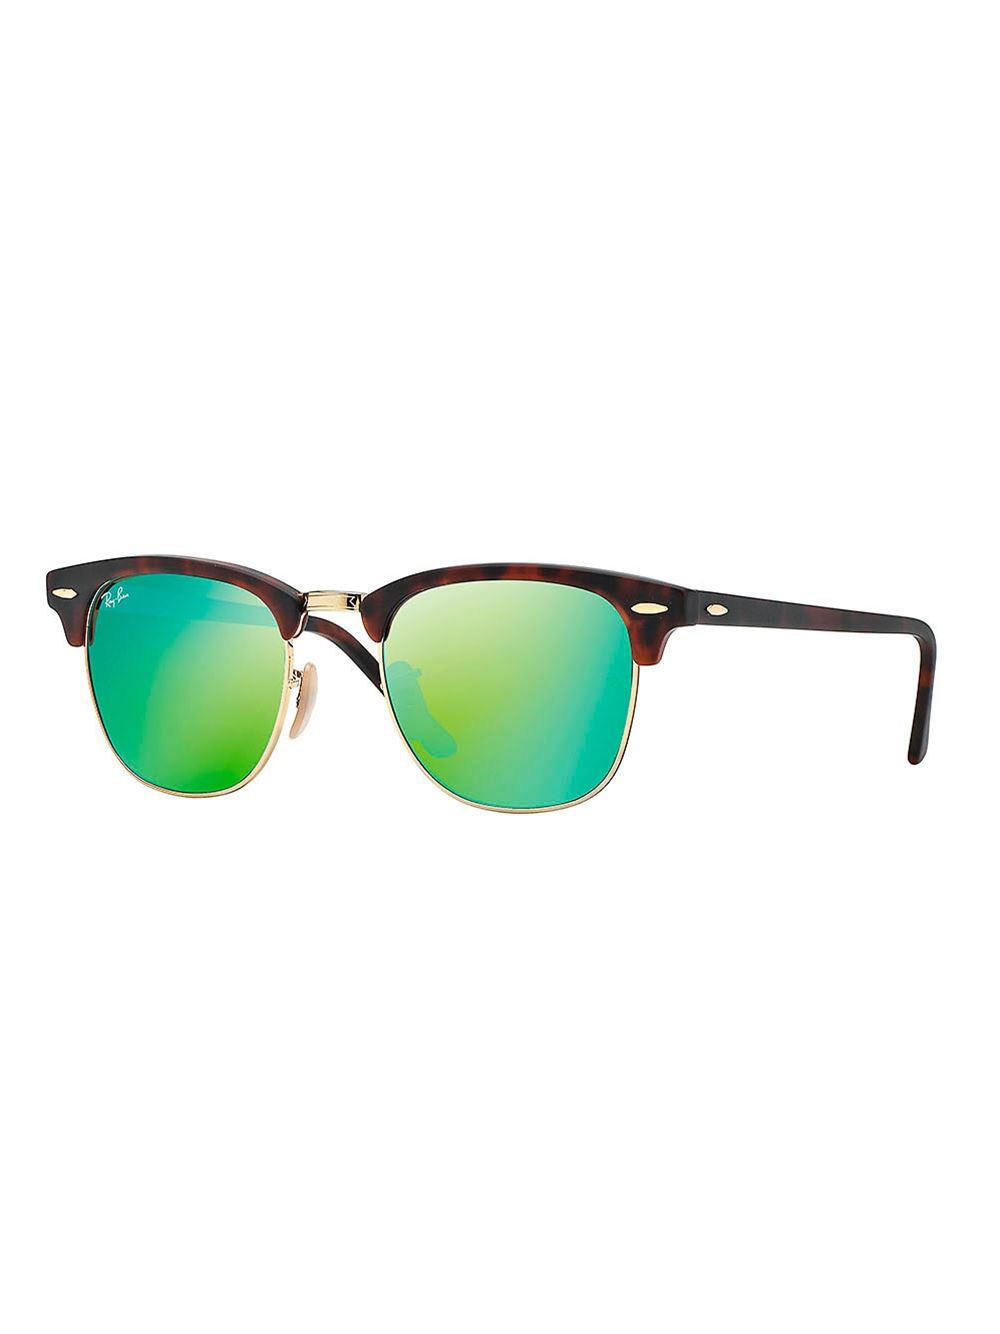 Ray-Ban 'clubmaster' Sunglasses in Brown